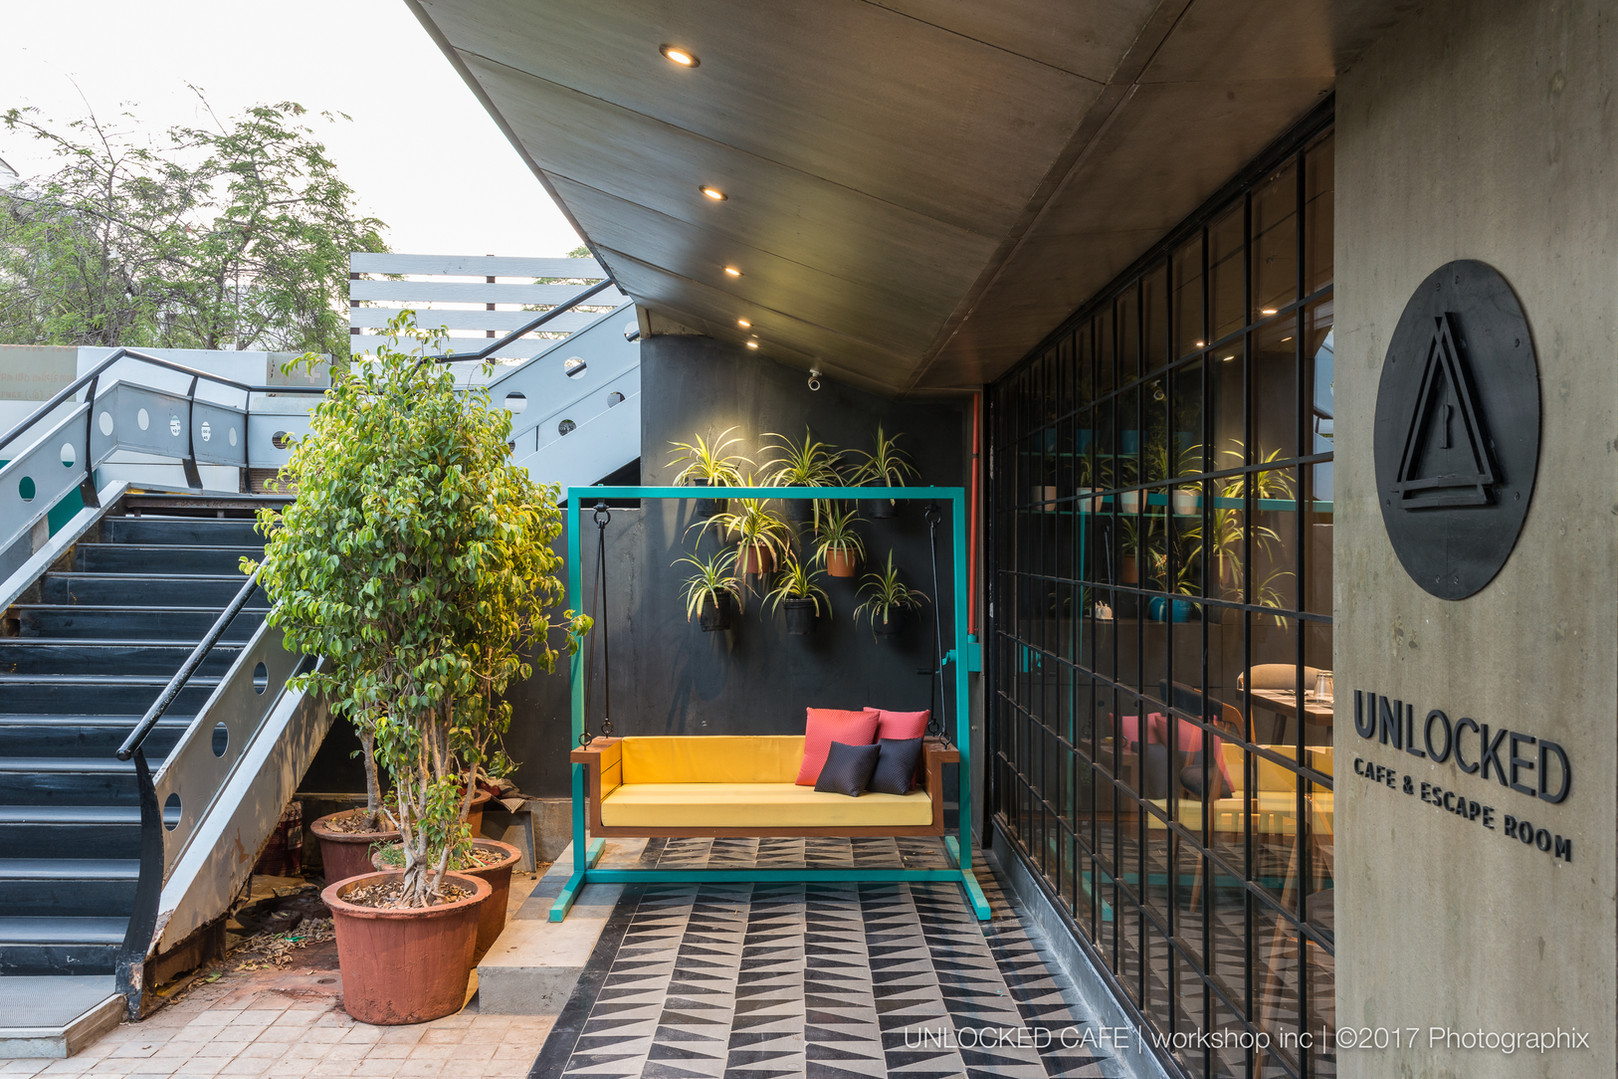 Quirky interiors and exteriors